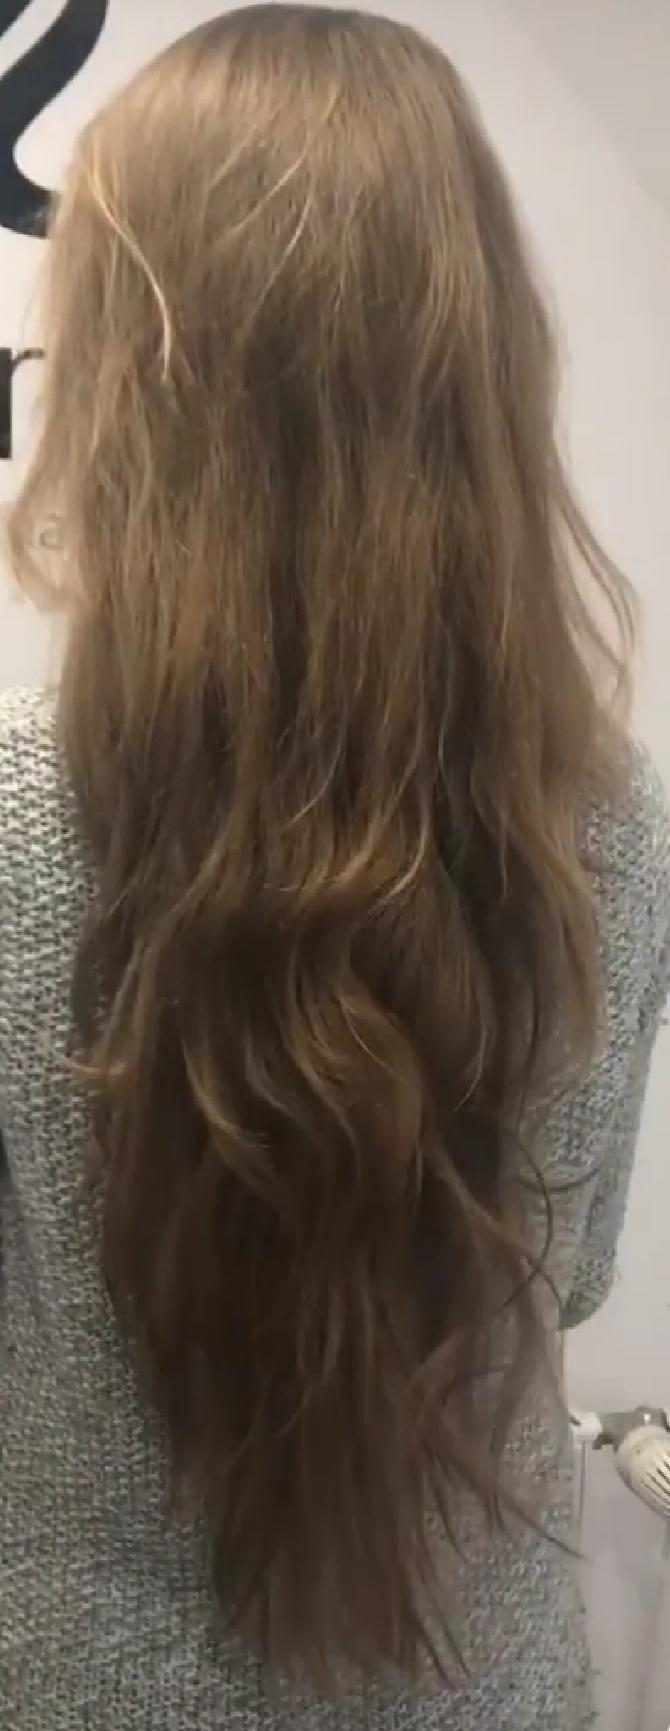 Which hair texture do you find more attractive?